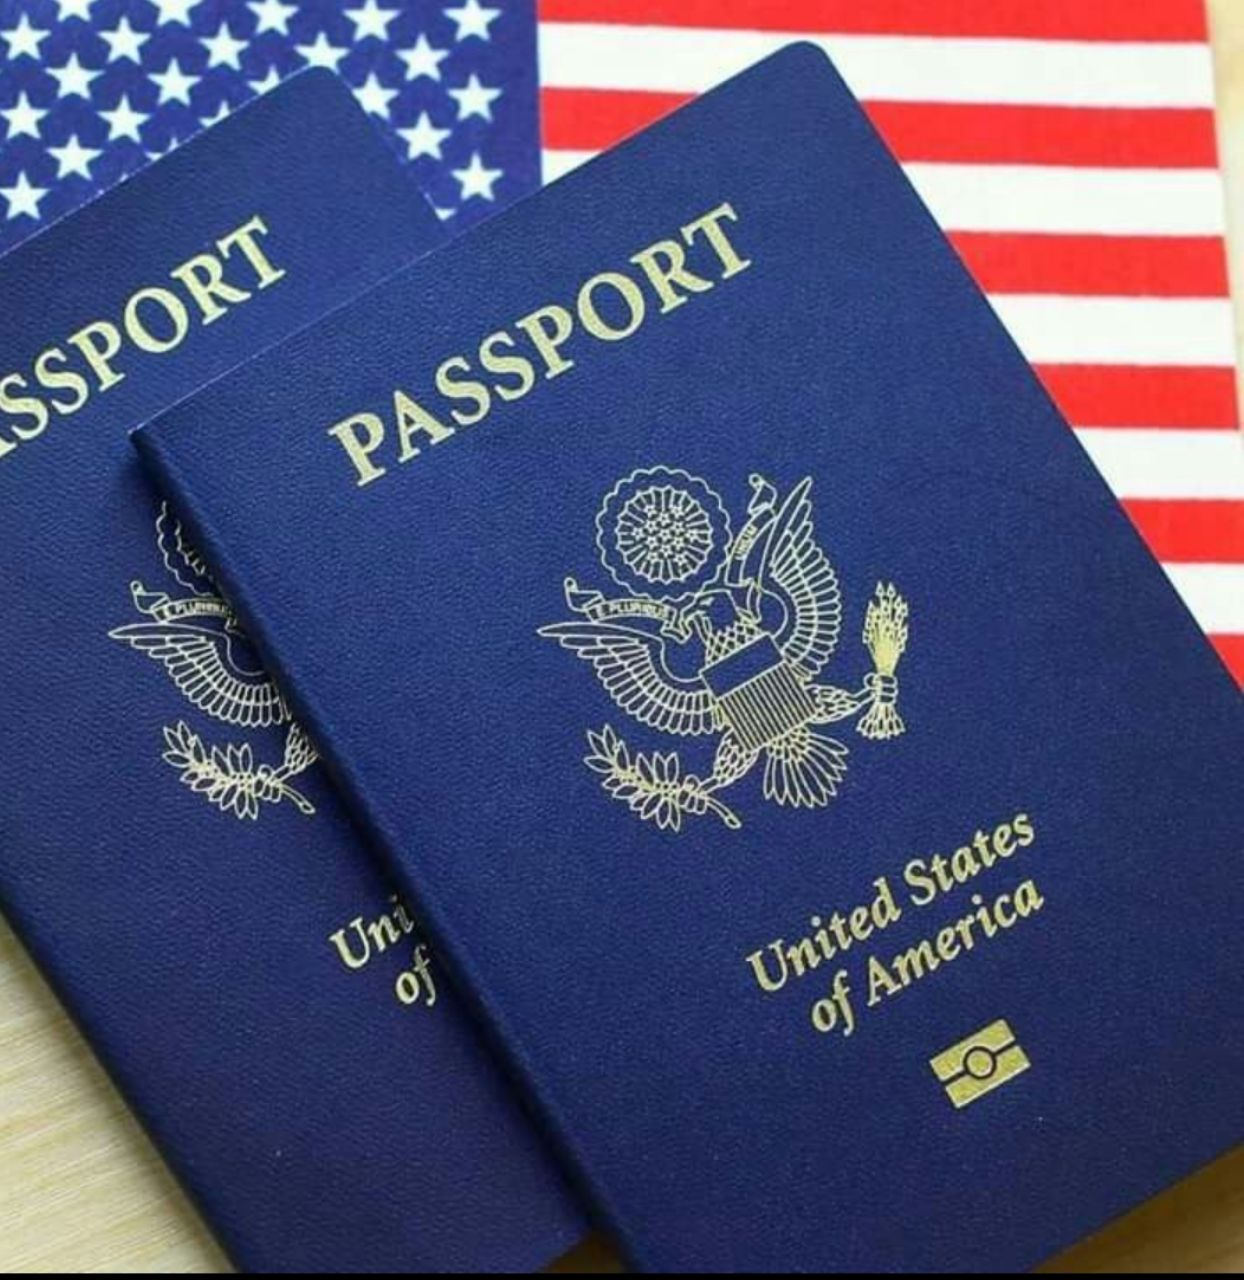 How to apply for a U.S passport online